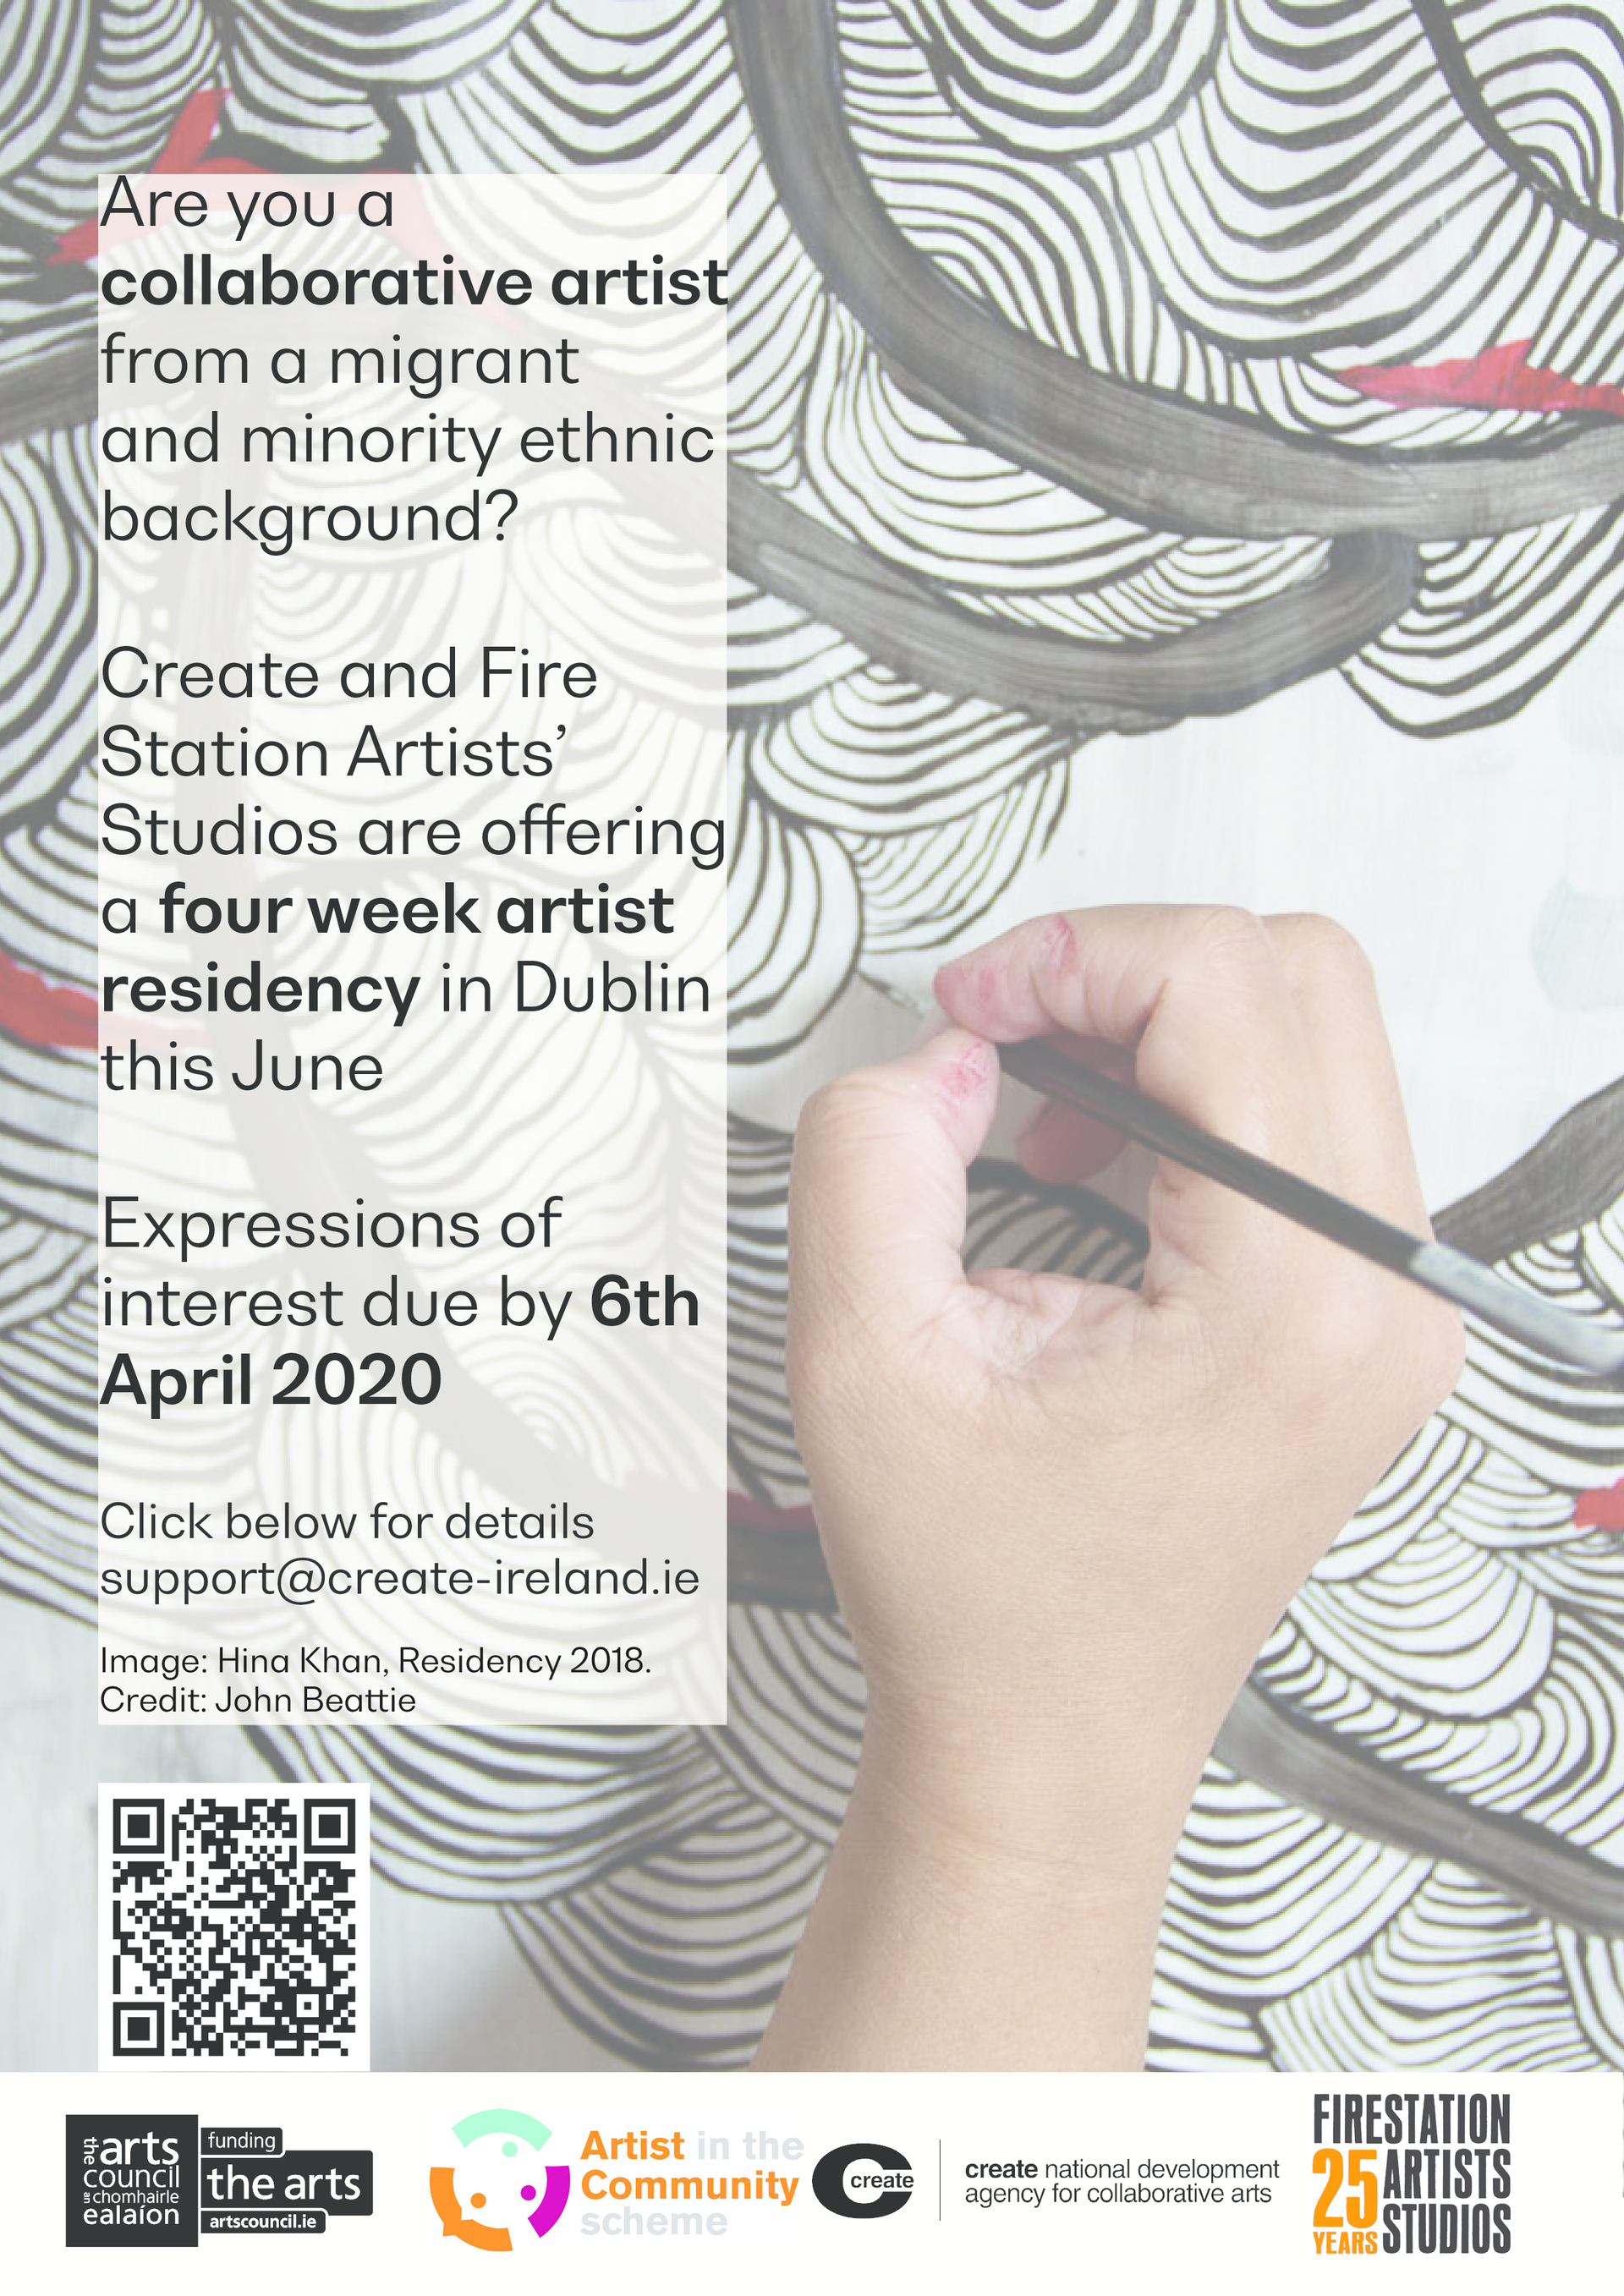 Are you a collaborative artist from a migrant and minority ethnic background? Create and Fire Station Artists' Studios are offering a four week artist residency in Dublin this June email support@create-ireland.ie